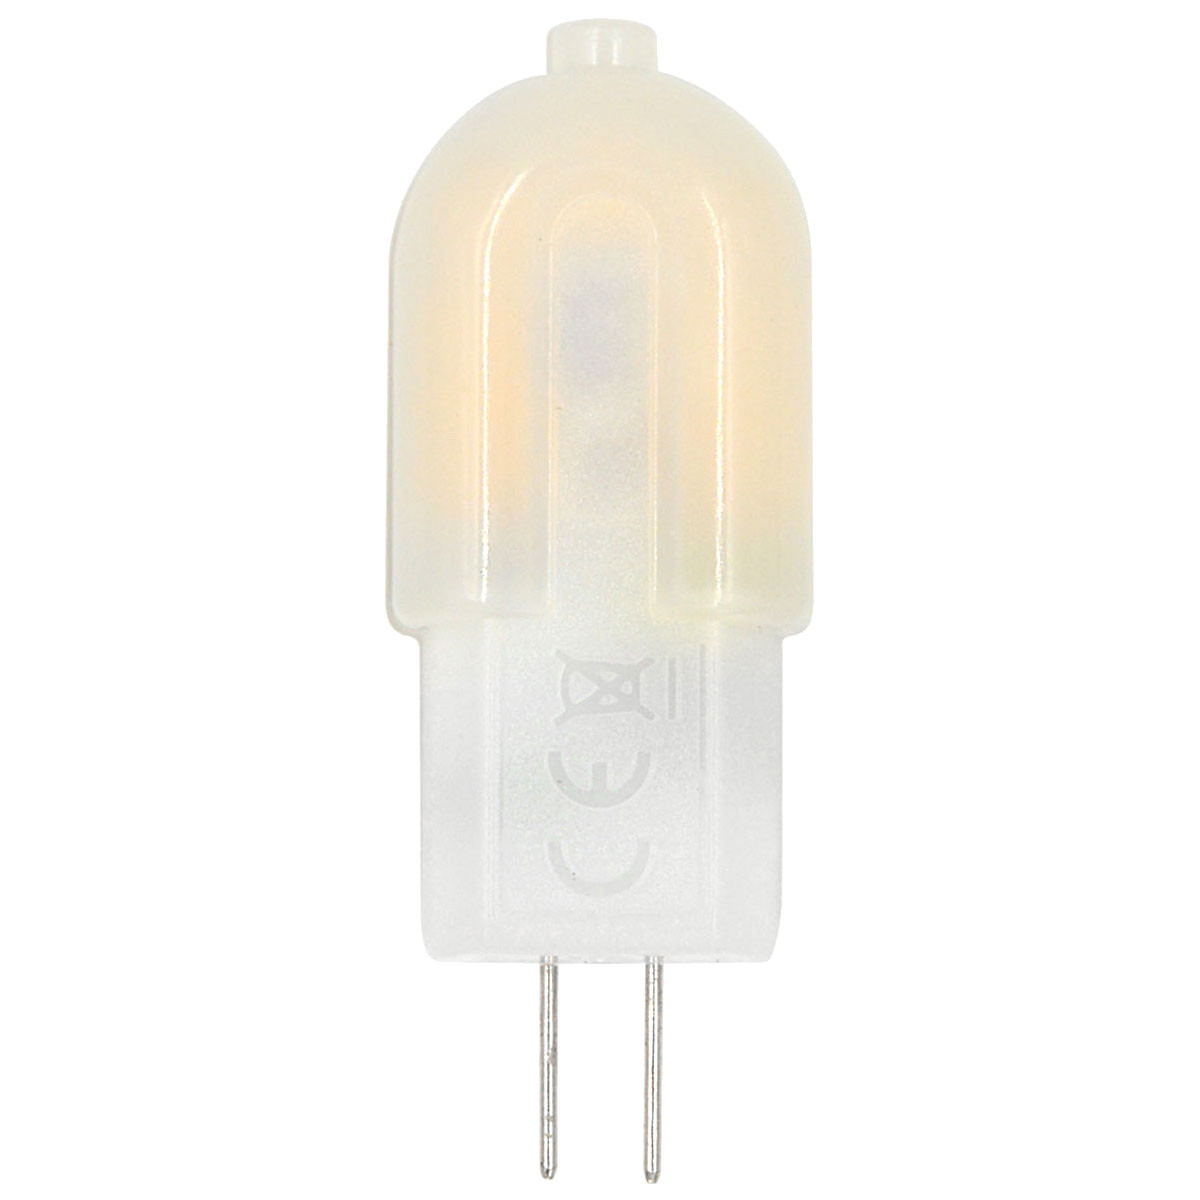 MENGS® G4 4W LED Light 18x 2835 SMD LED Bulb Lamp AC/DC 12V in Warm White Energy-Saving Light